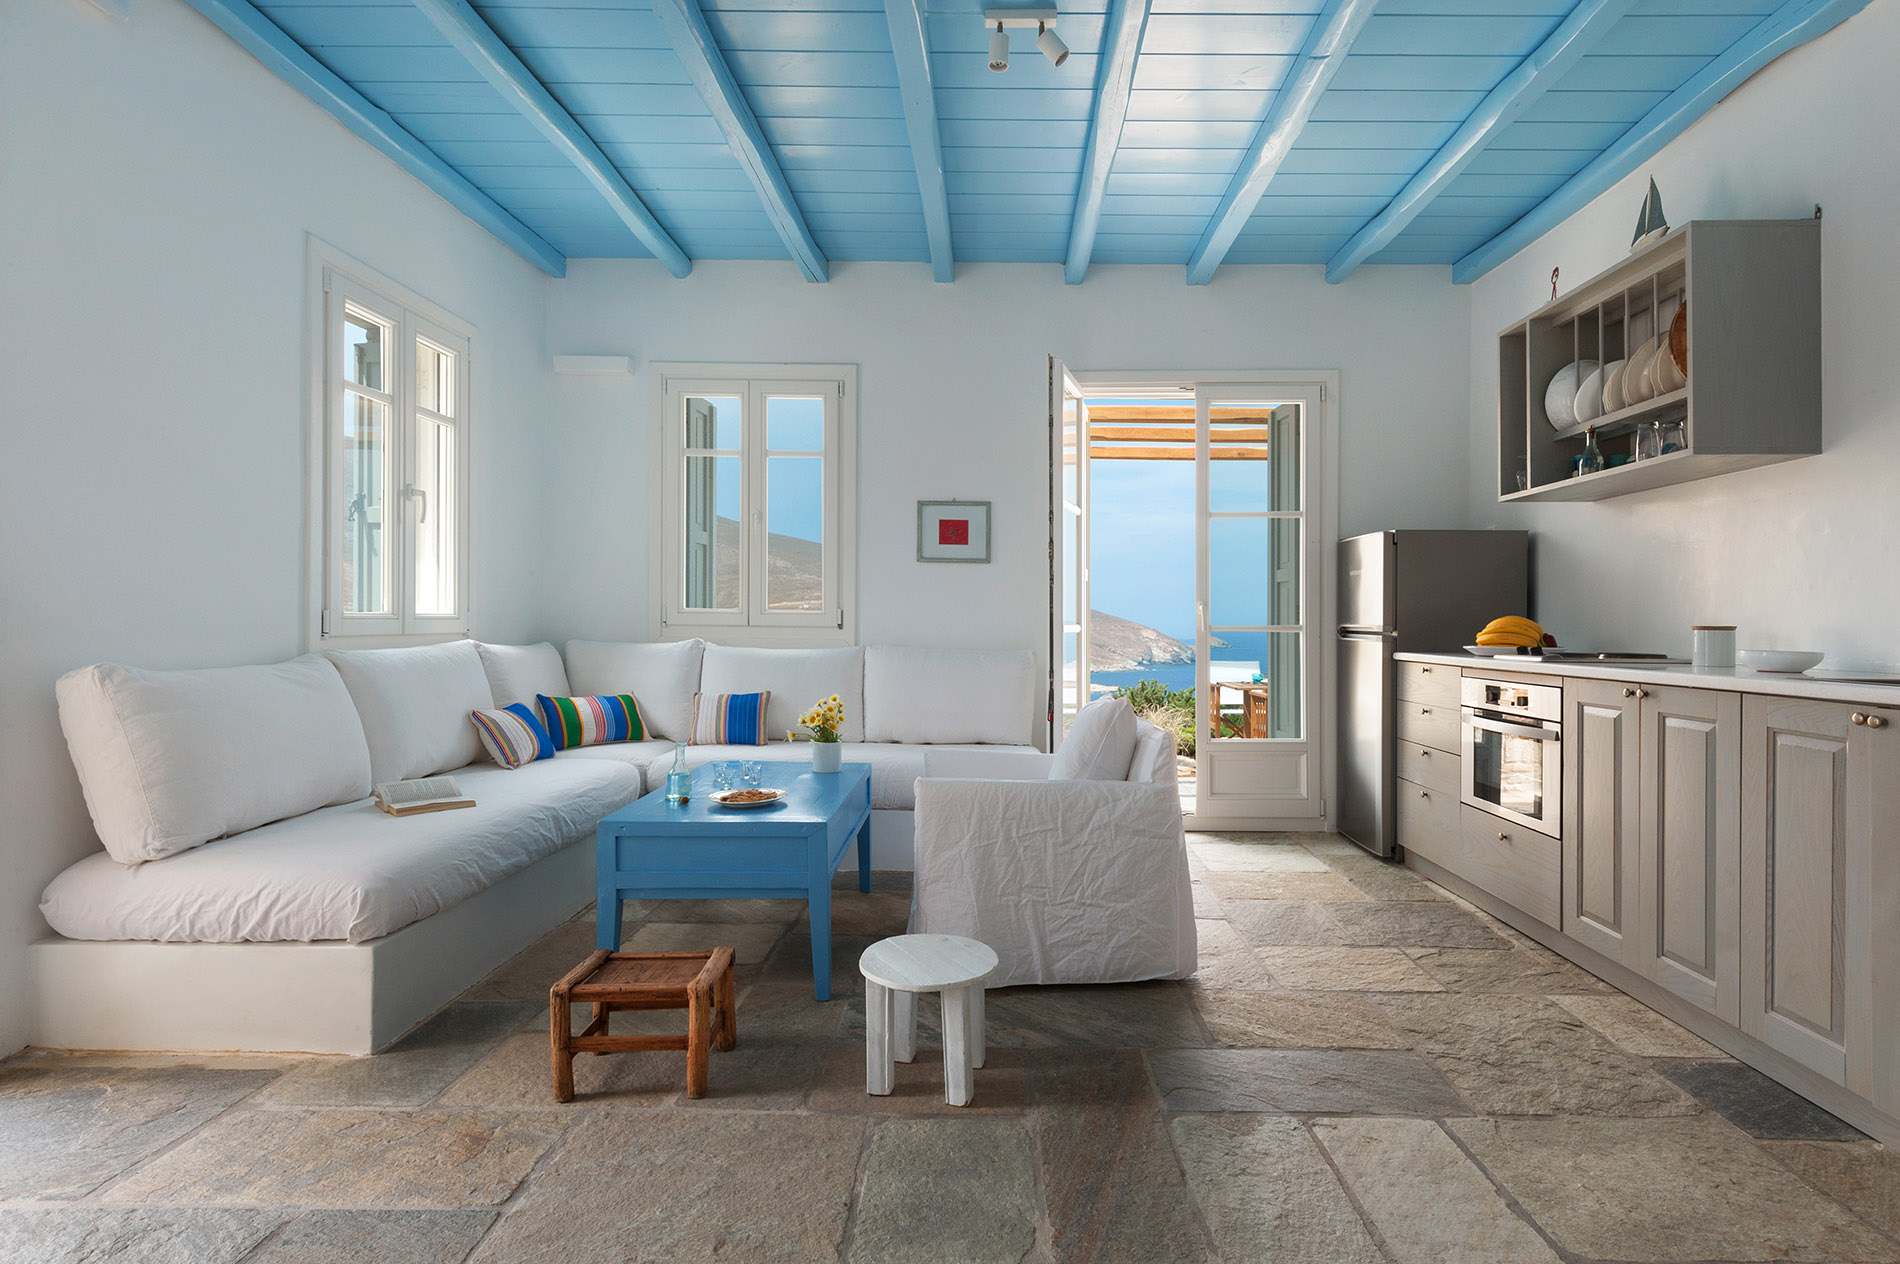 Aspes Serifos Villas - Blue Villa